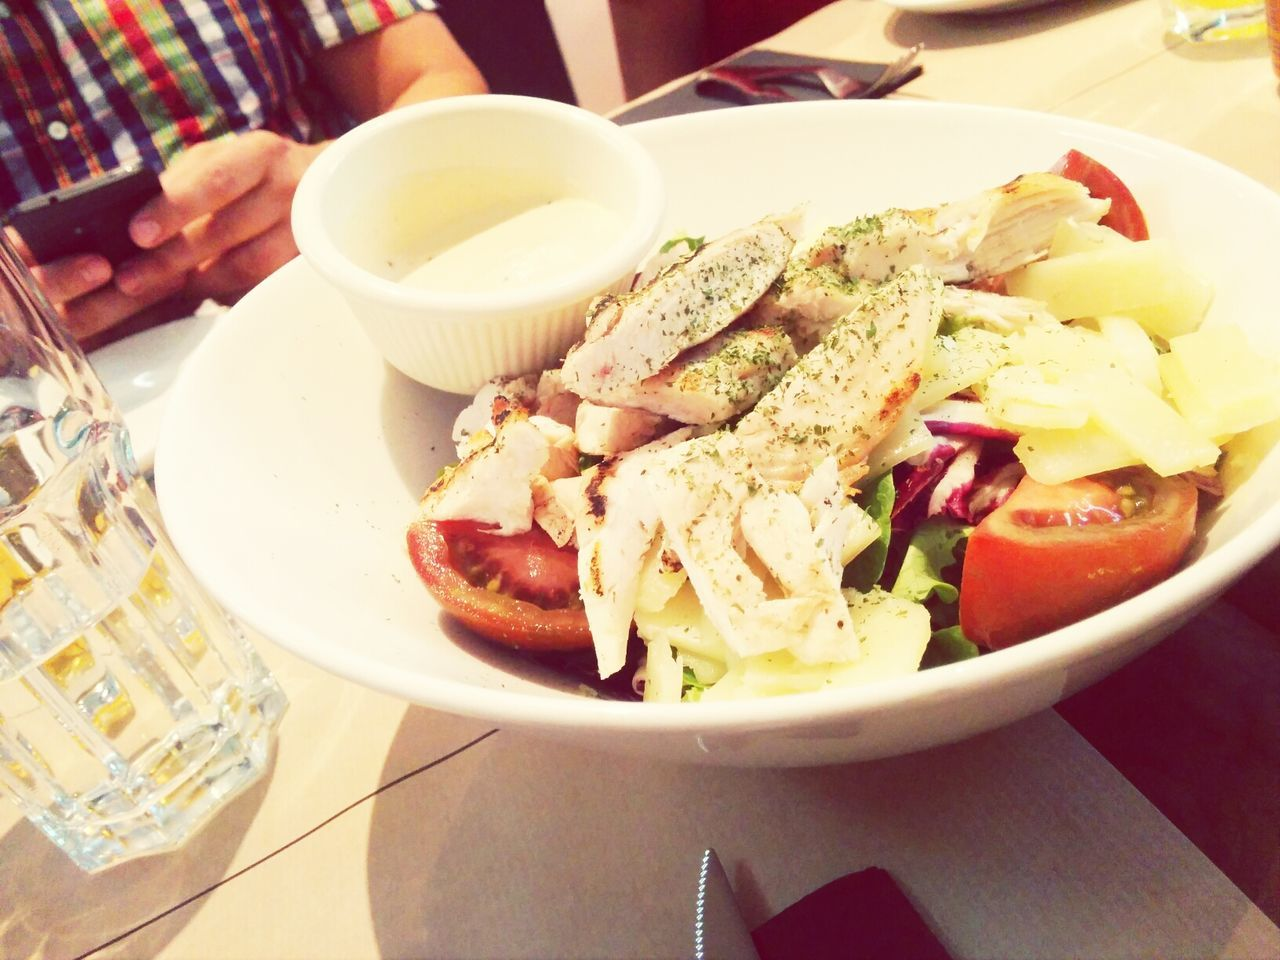 food and drink, food, table, ready-to-eat, plate, freshness, indoors, bowl, salad, serving size, no people, healthy eating, close-up, day